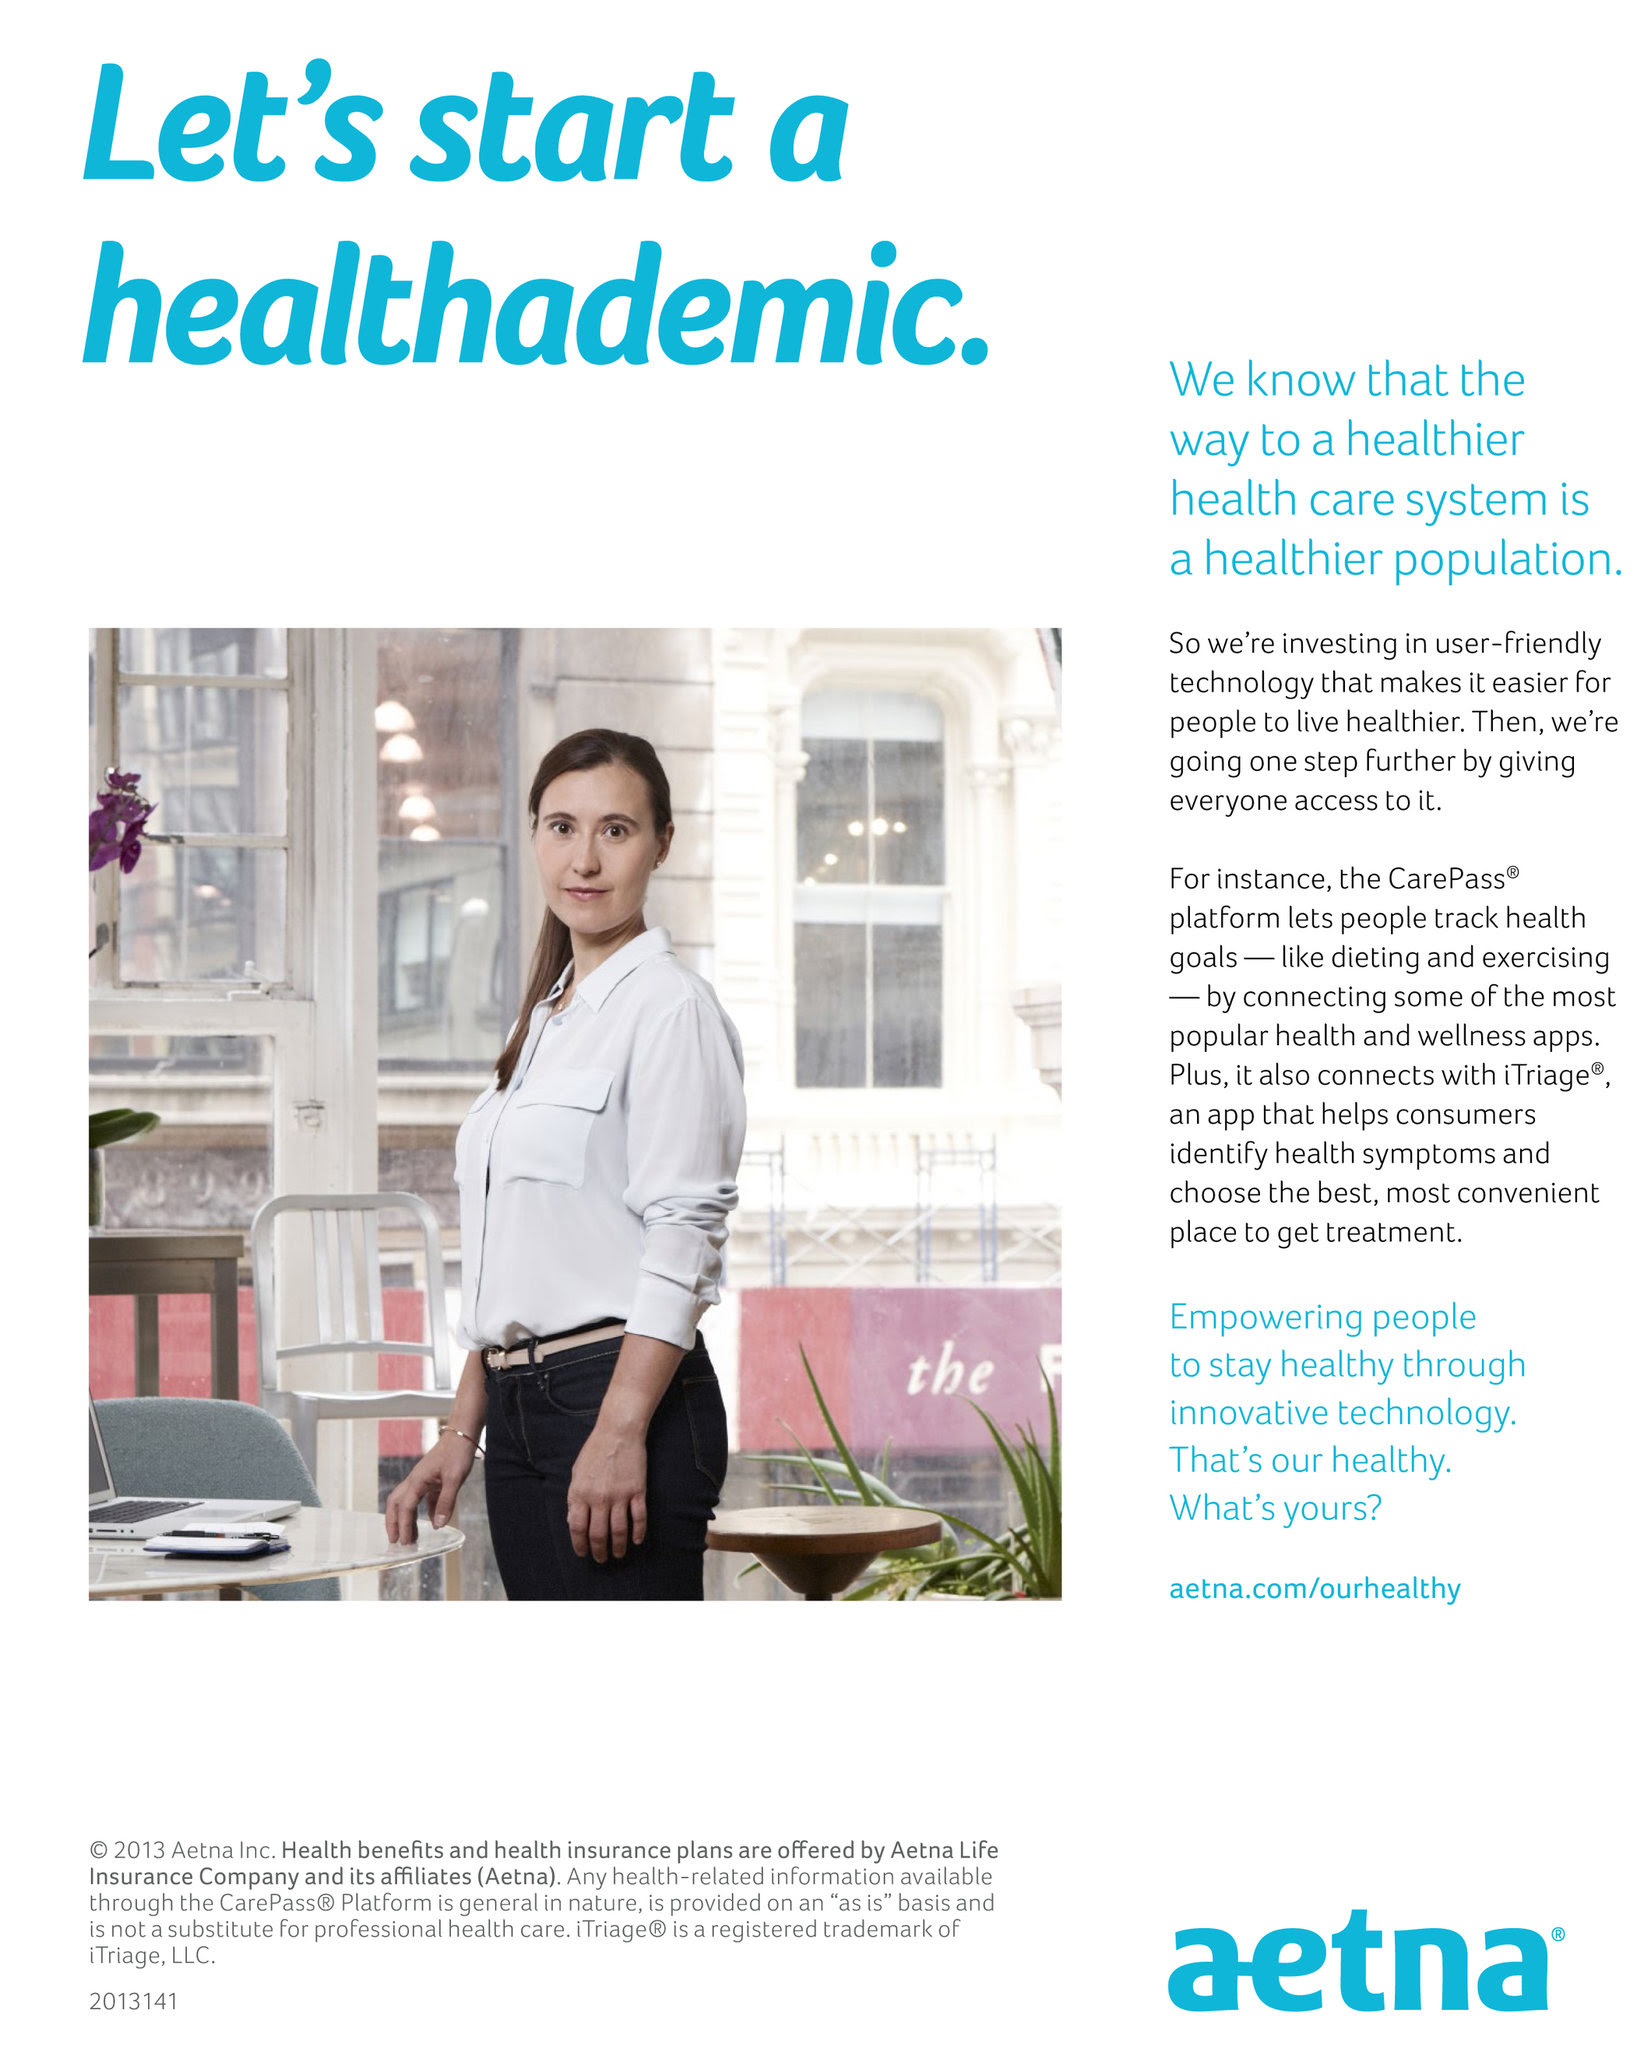 With Change Coming, Aetna Targets Employers - The New York ...